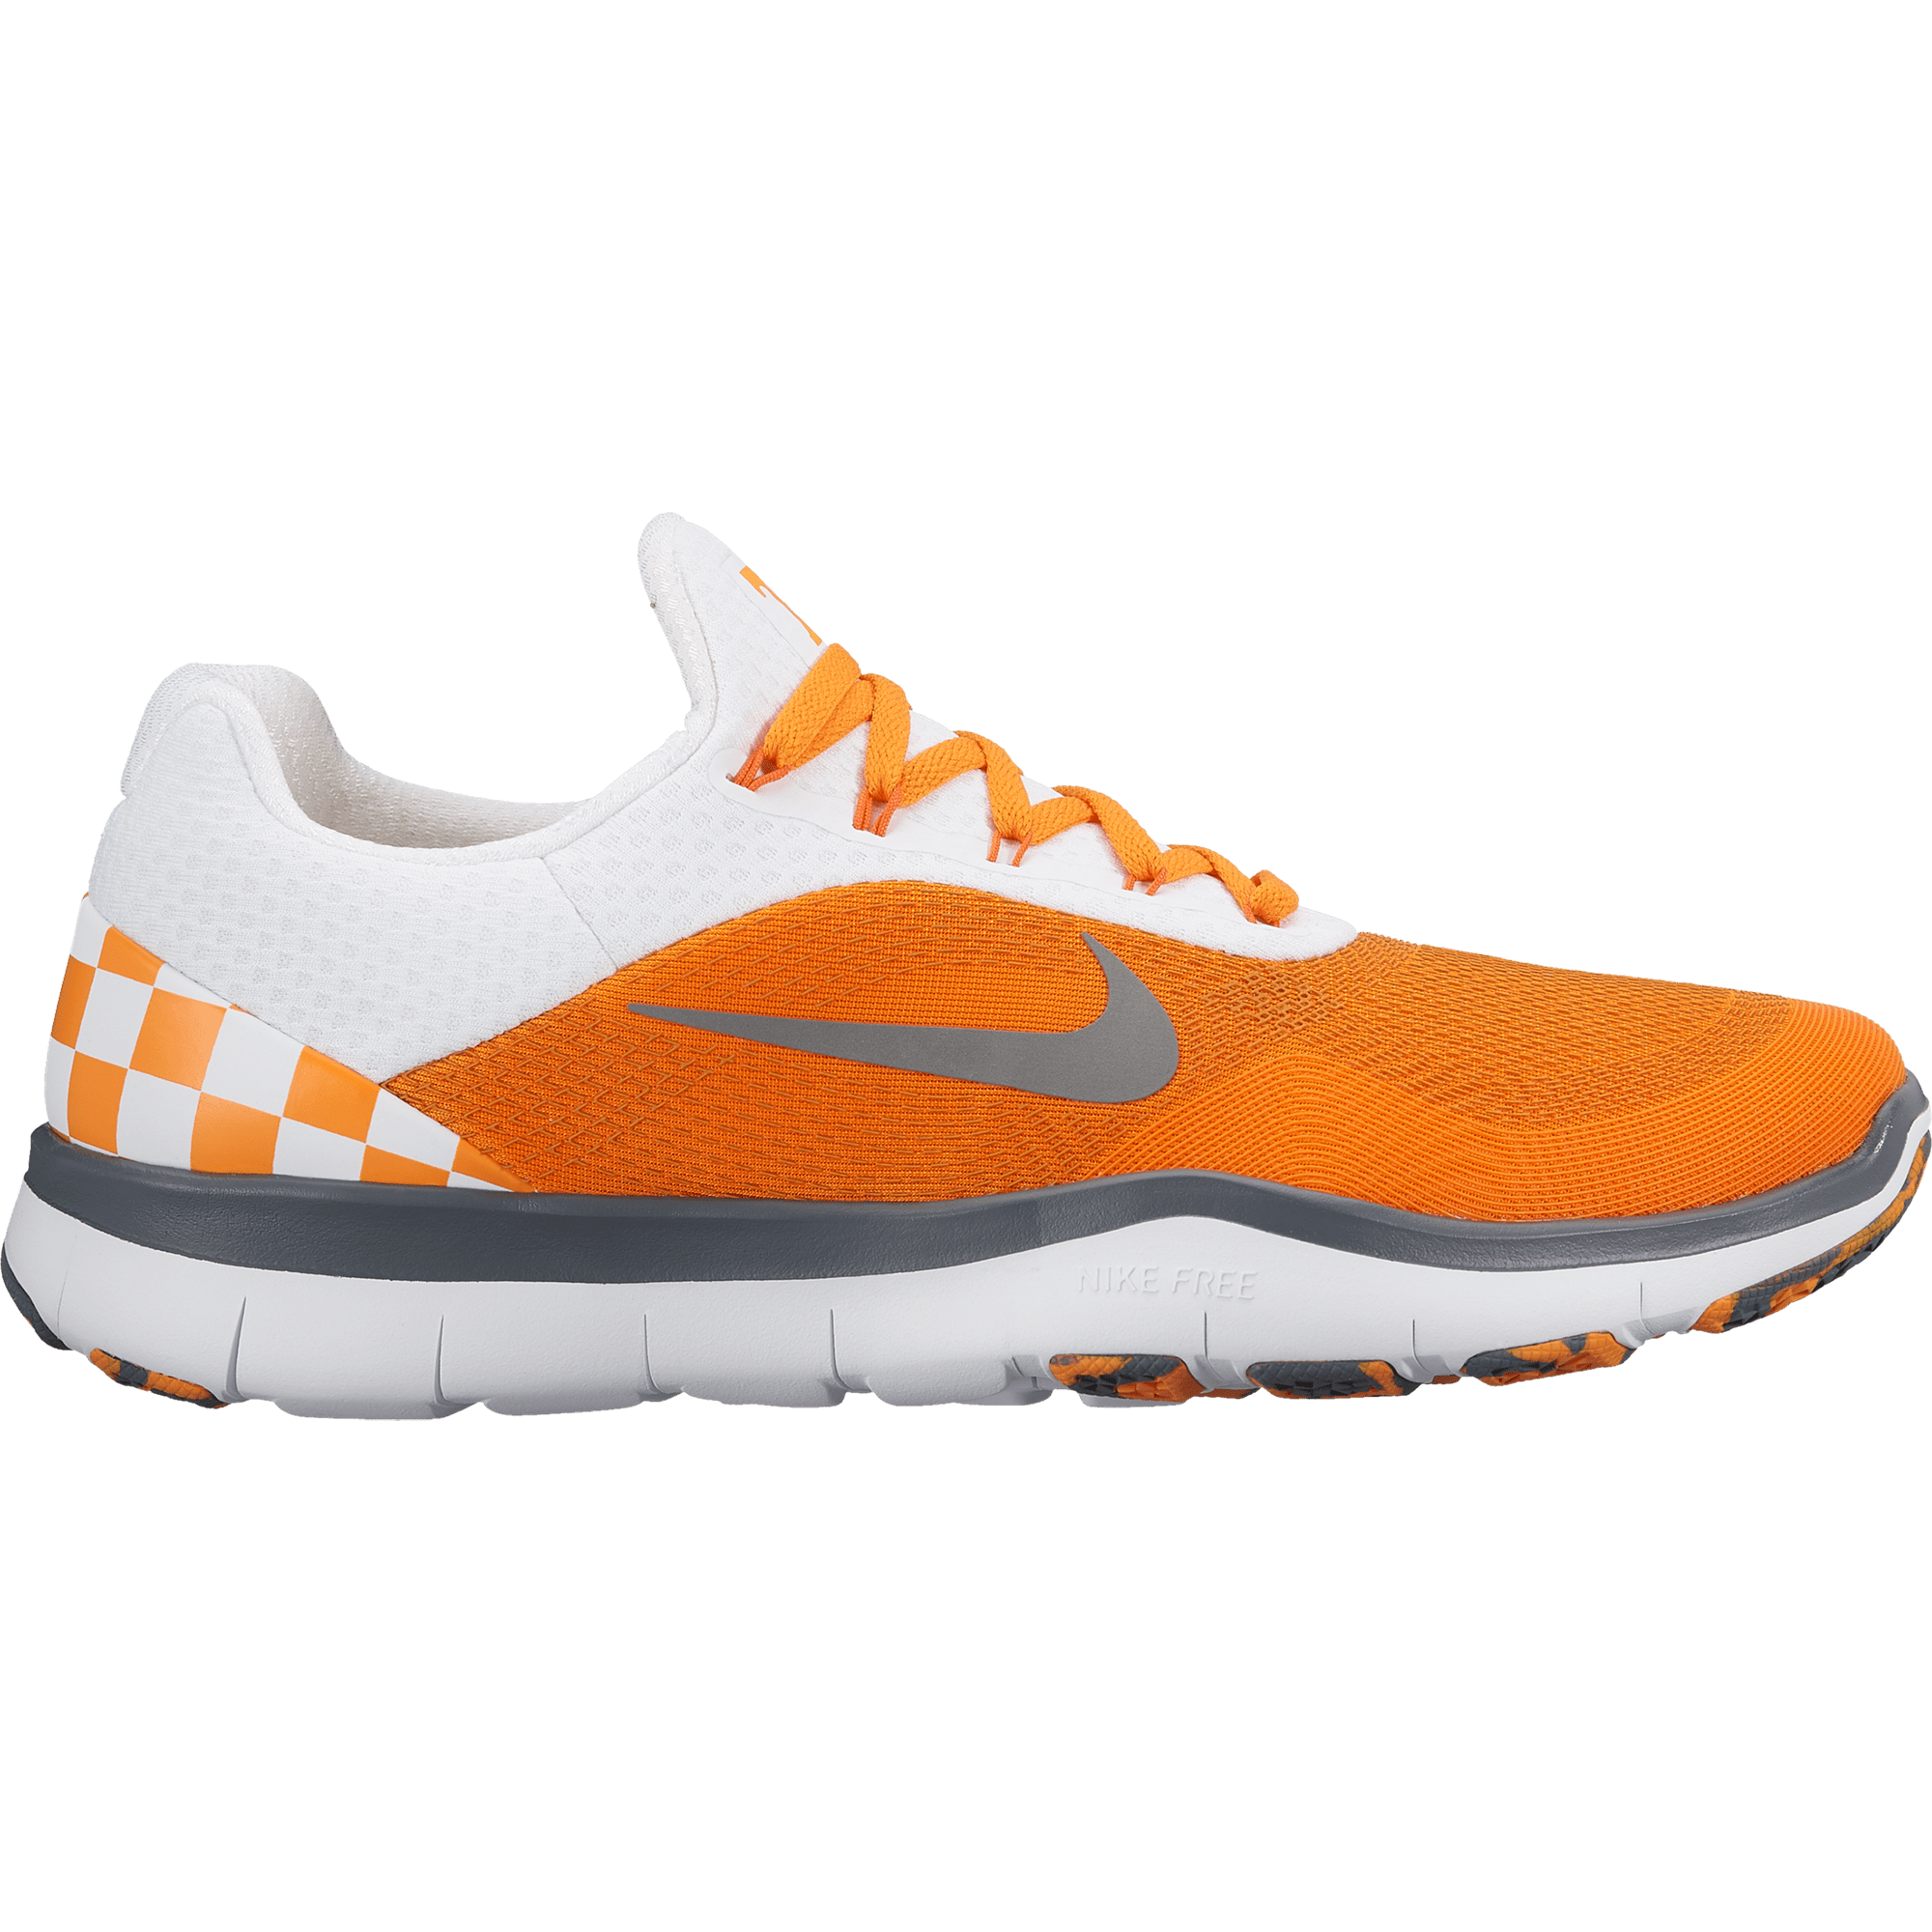 New Tennessee Nike Shoes Free Trainer